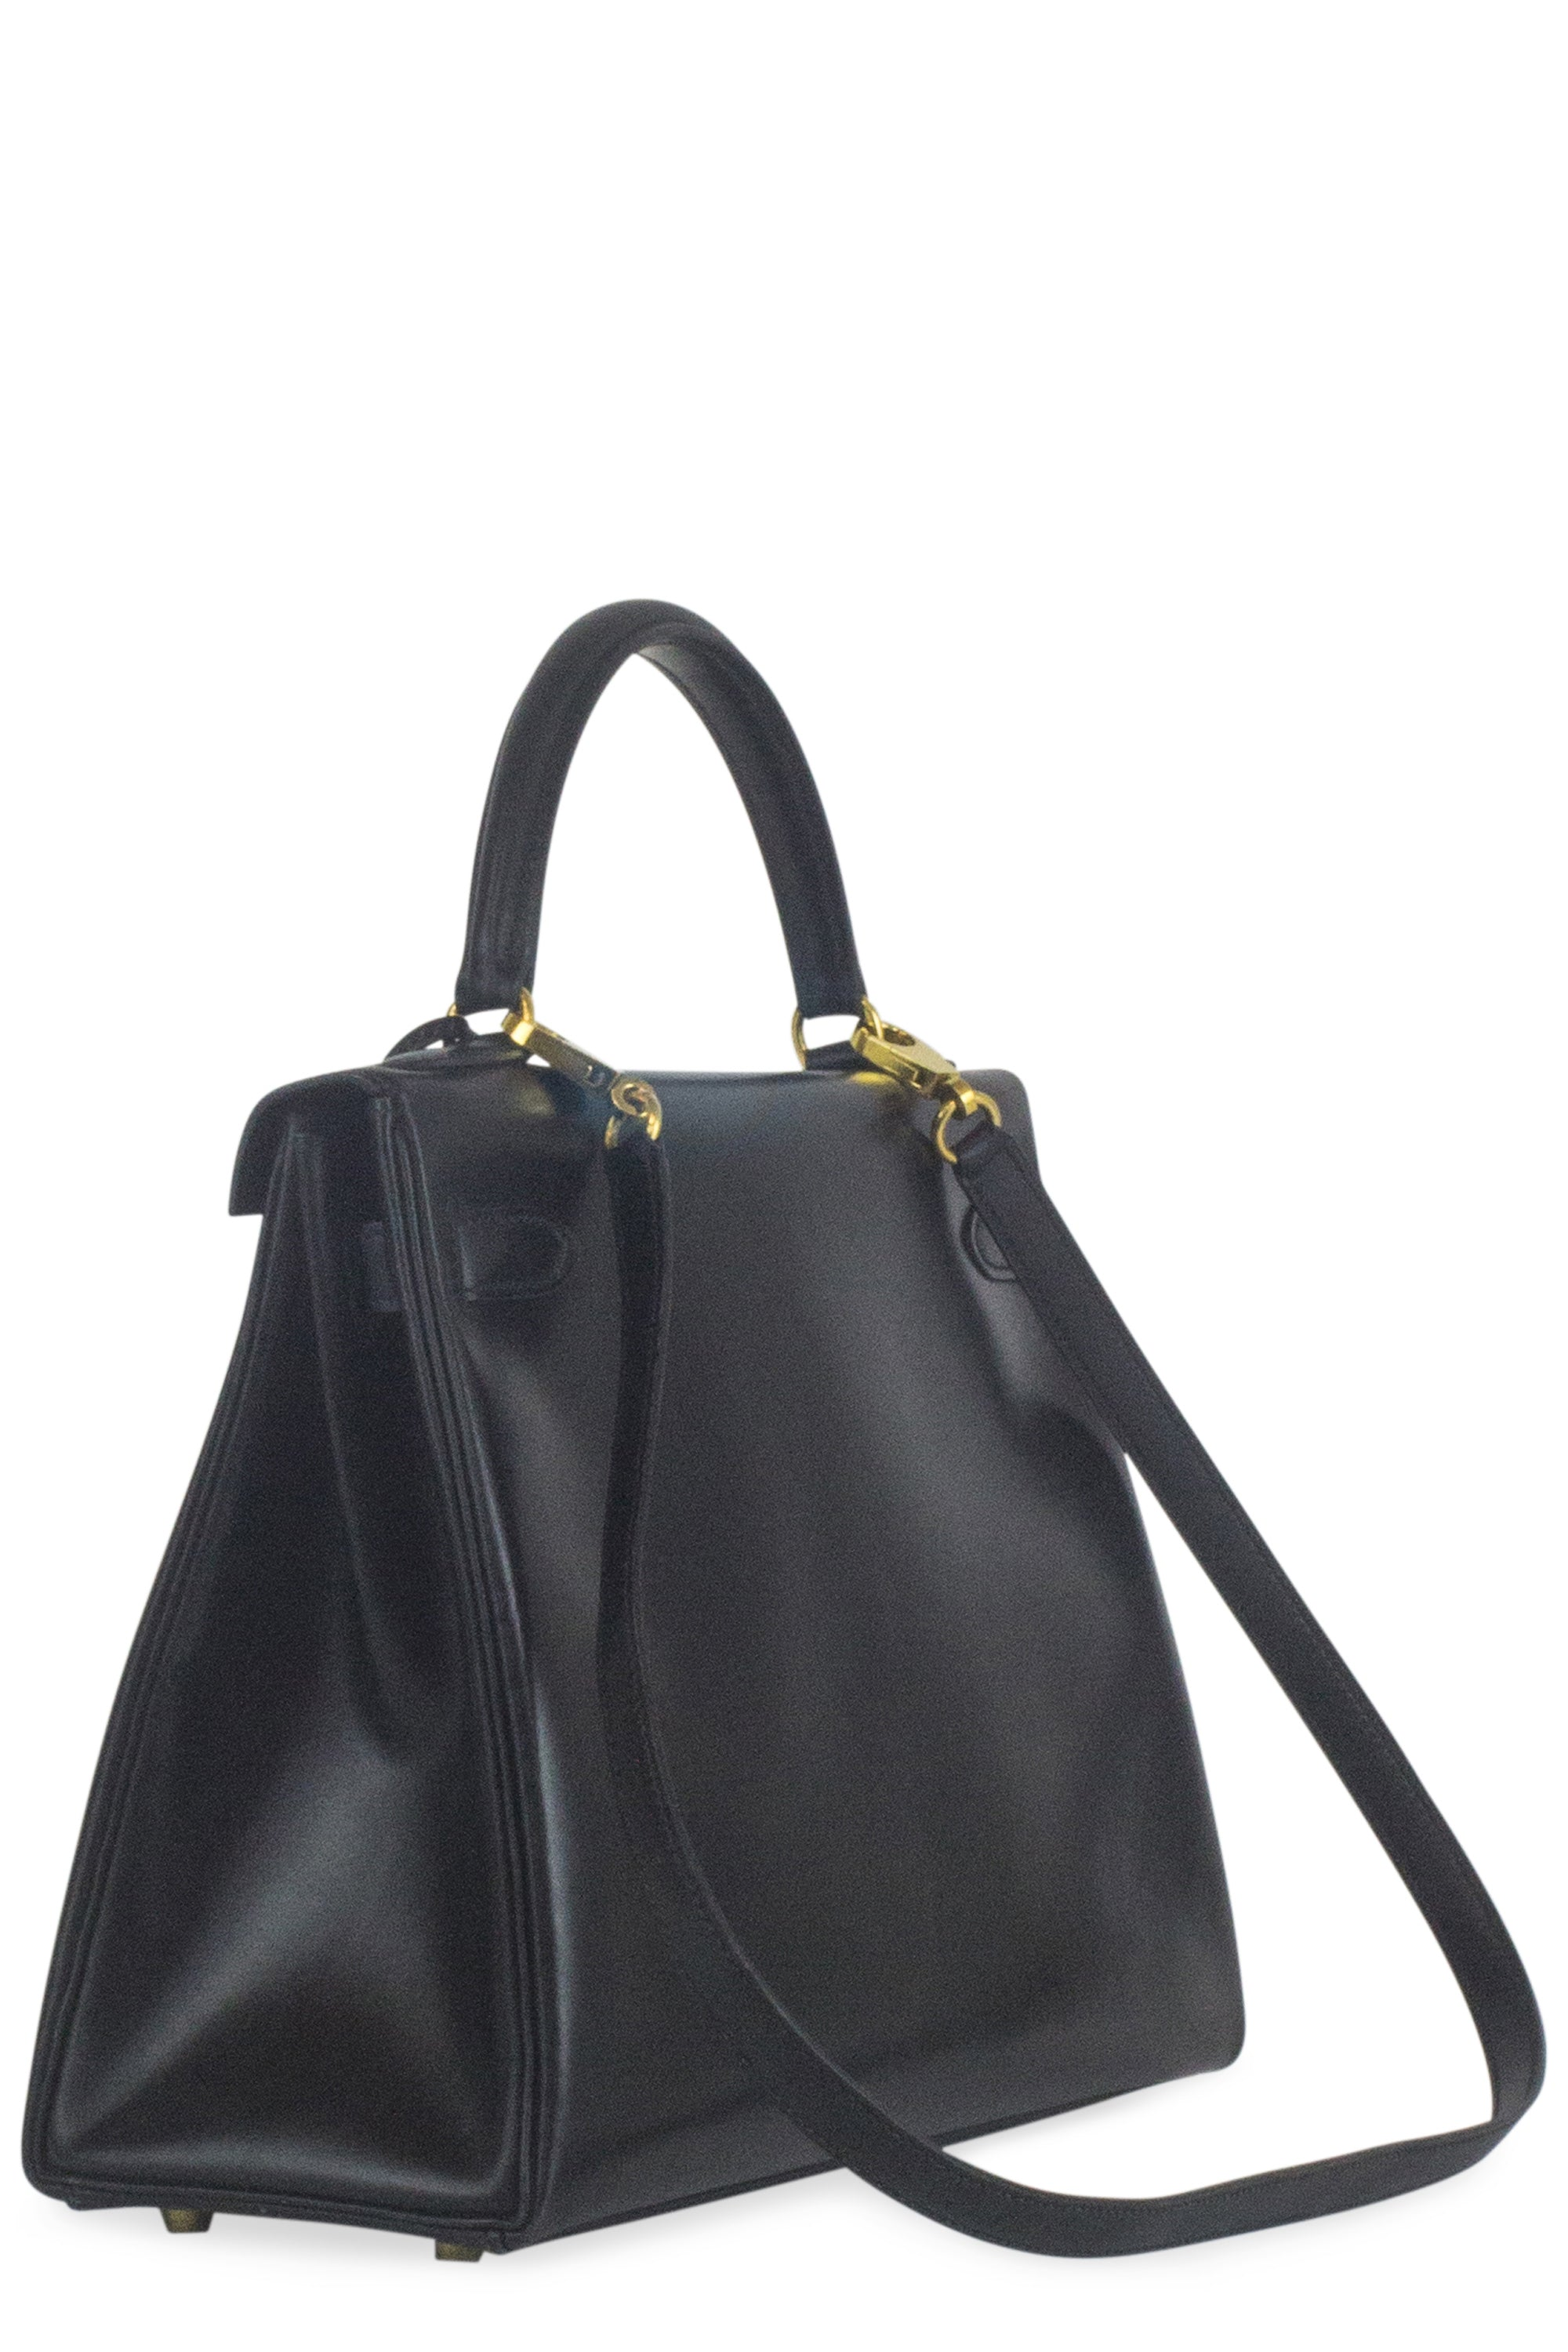 HERMÈS Kelly Retourné 32 Box Leather Black